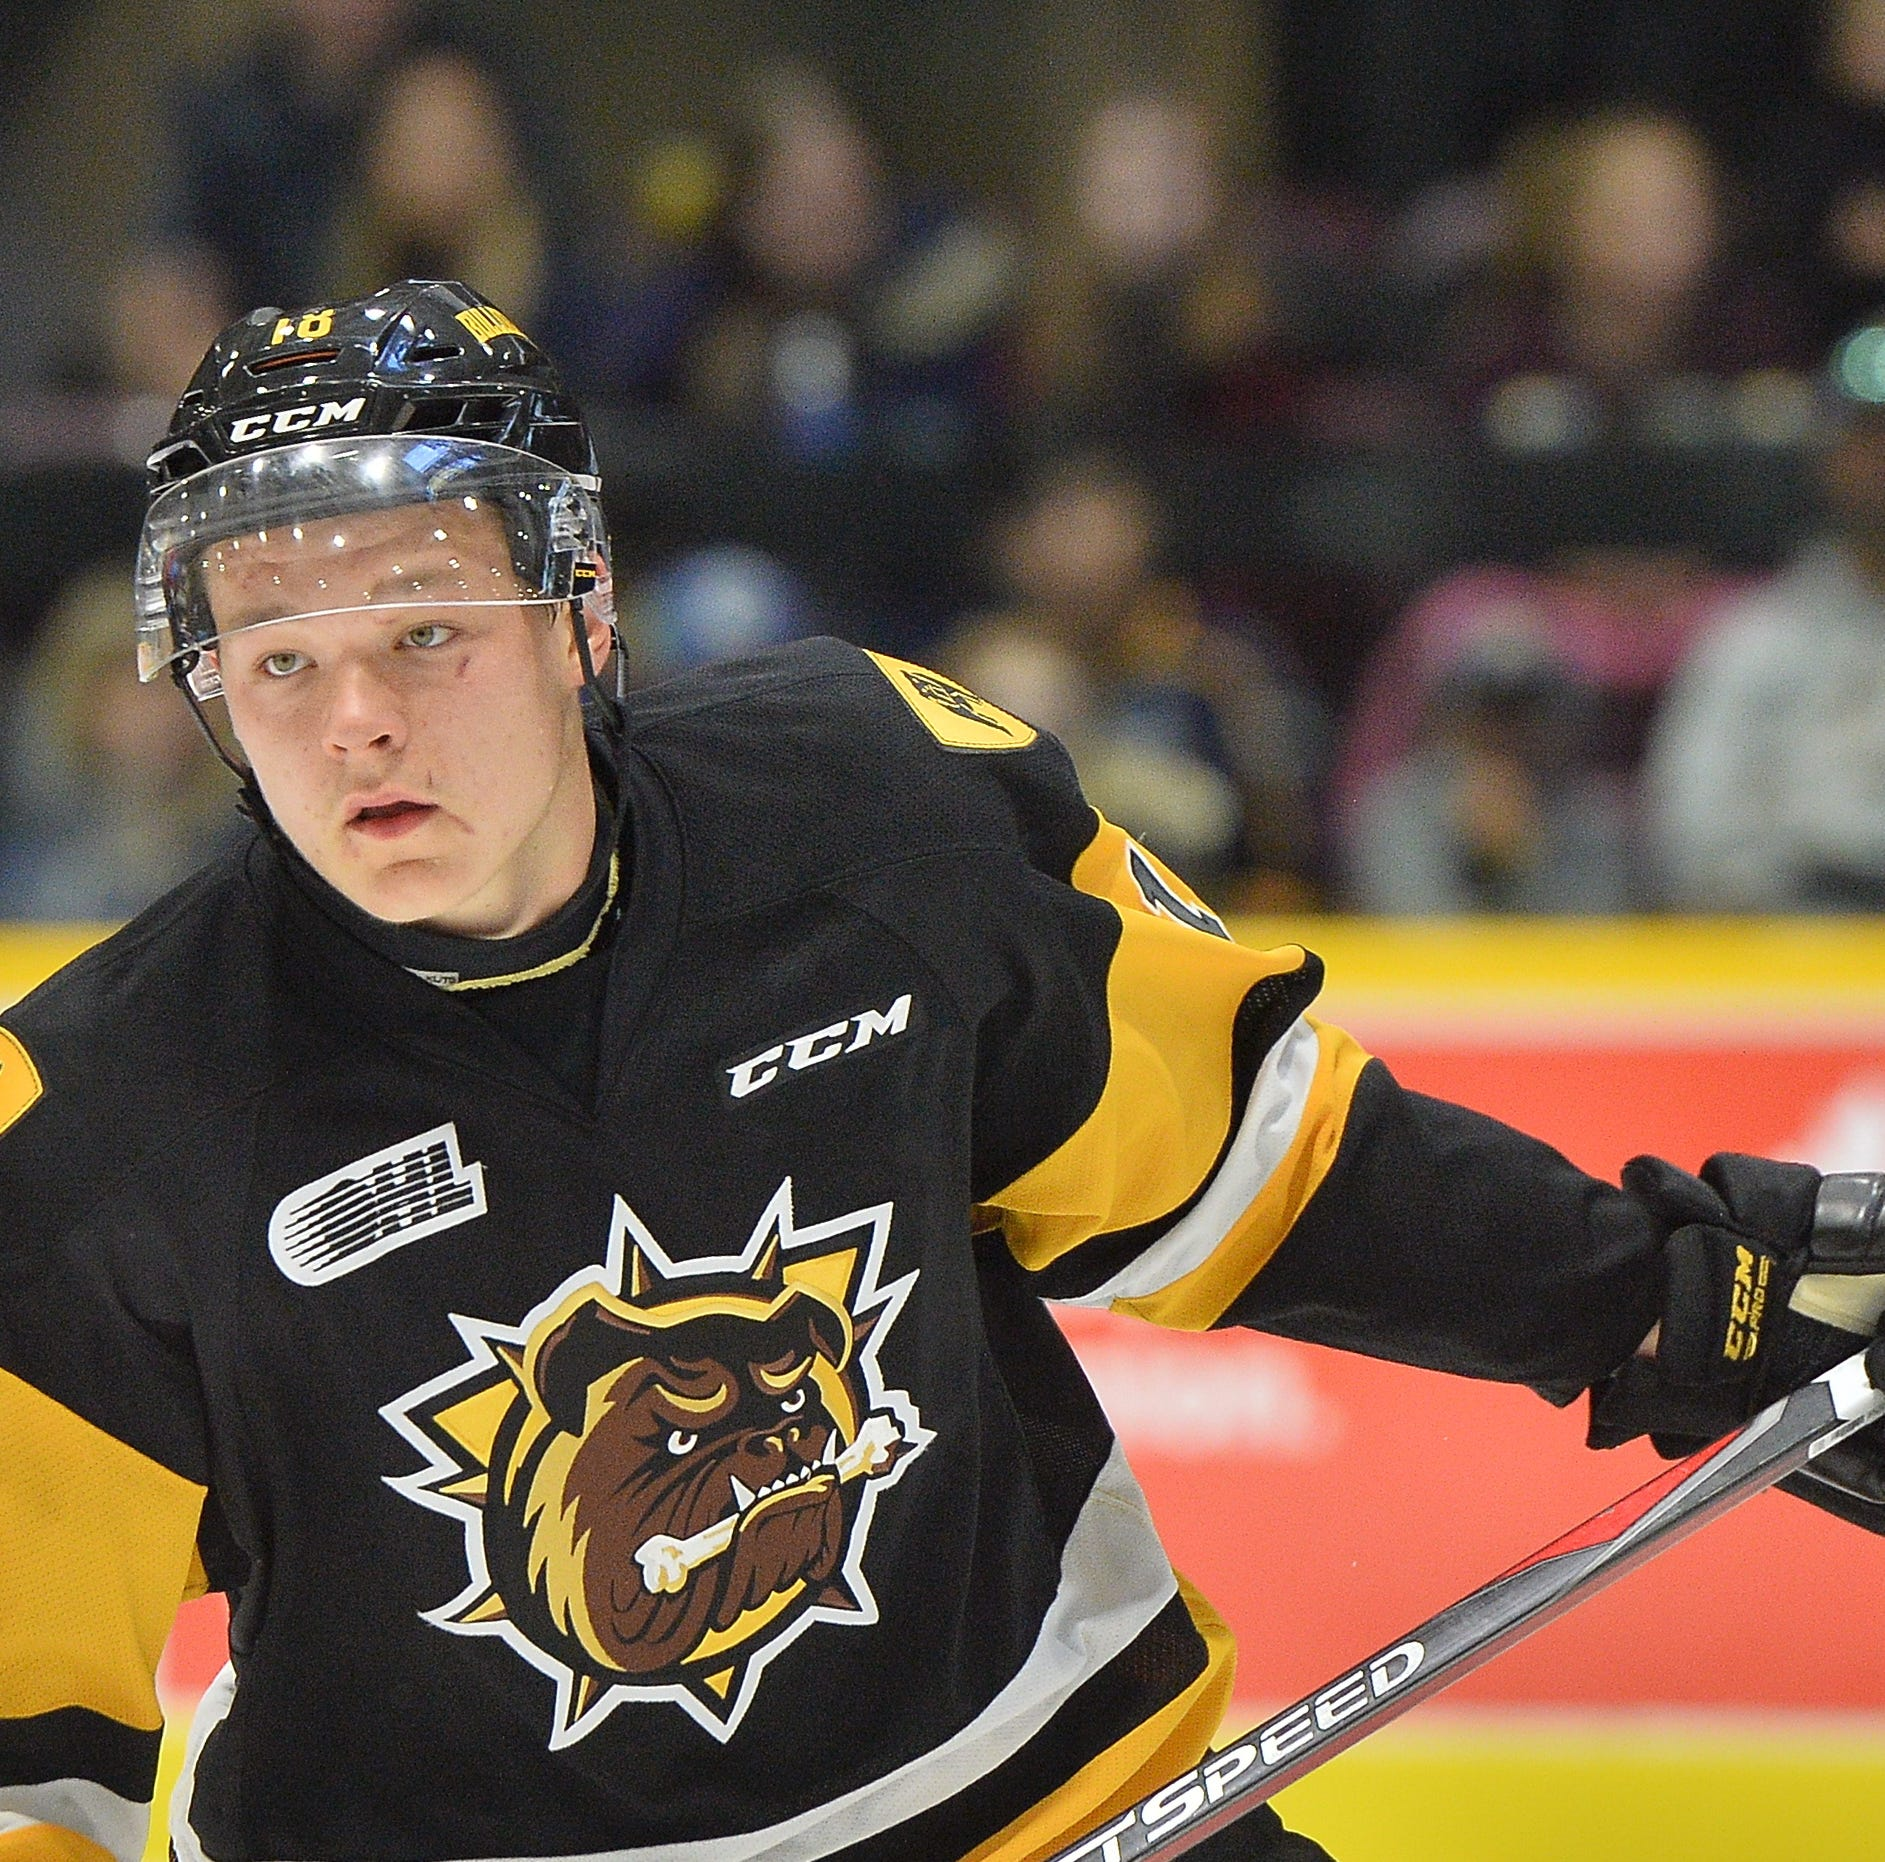 Flyers prospect watch: Can Matthew Strome put it all together?